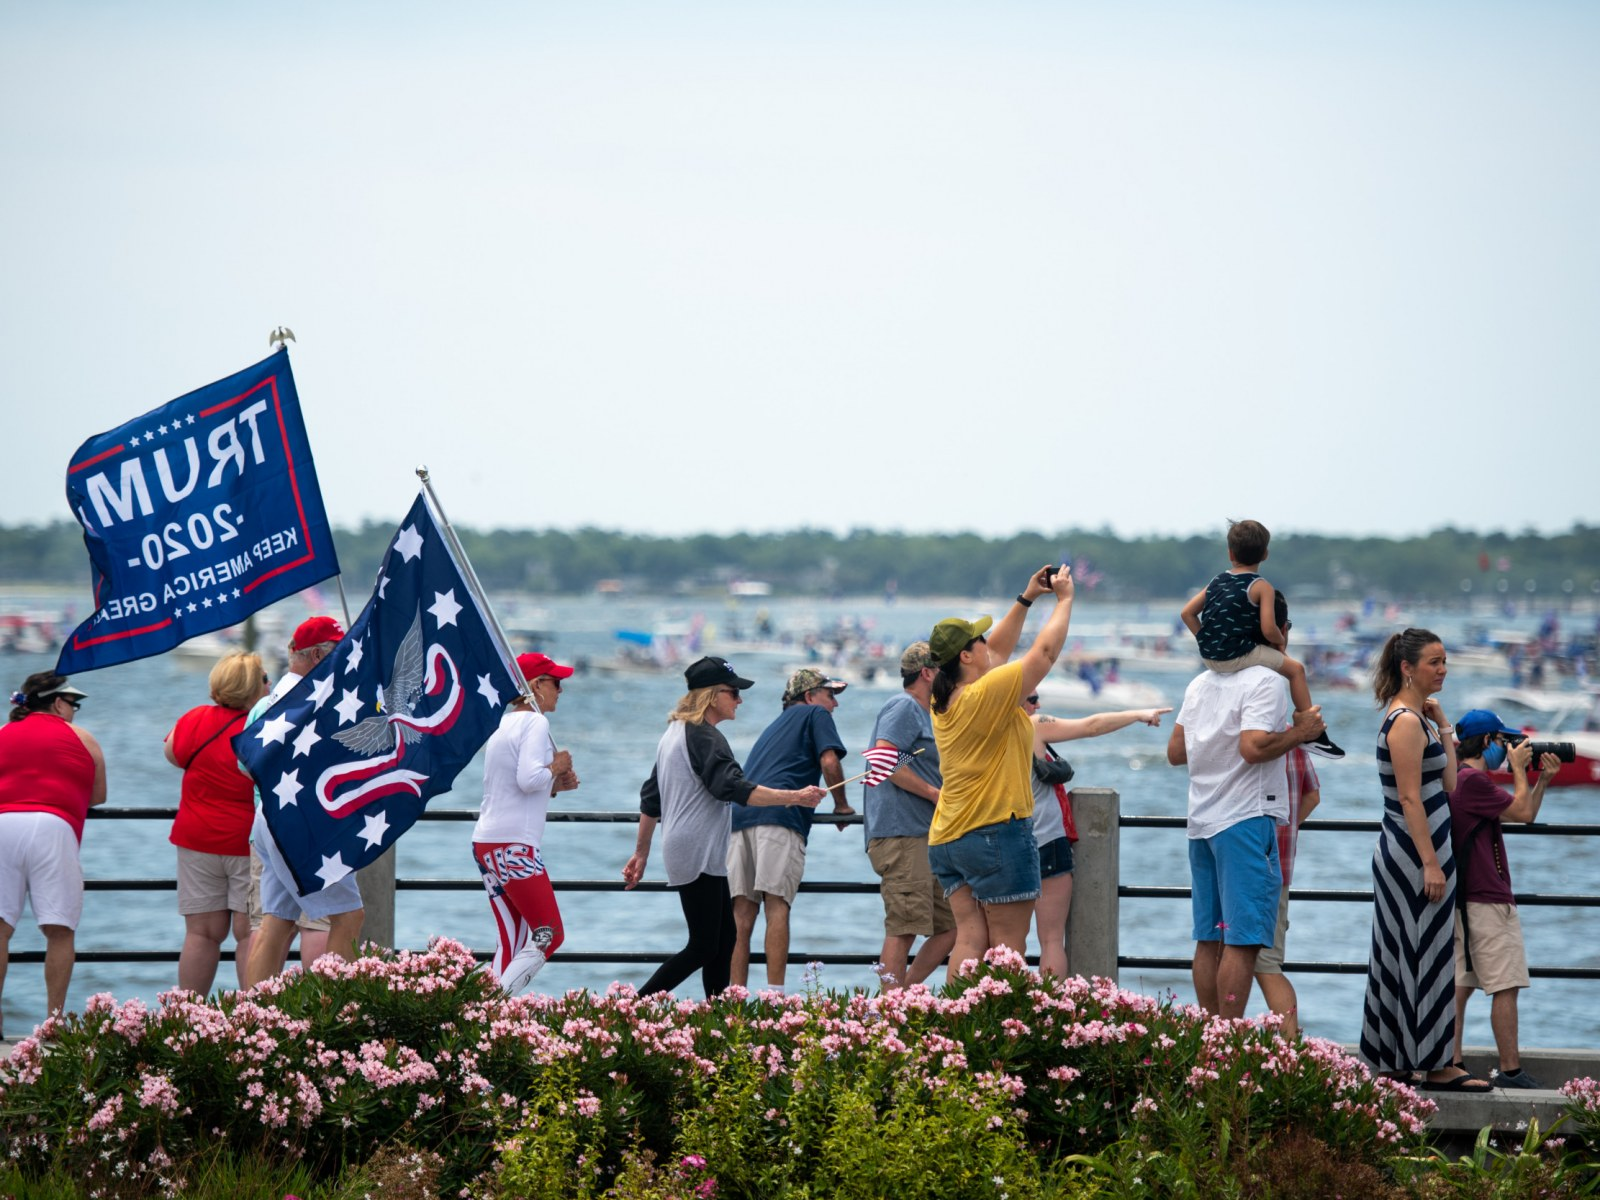 Pro Trump Boat Parades Over Labor Day Weekend To Feature Thousands Of Boats Amid Covid 19 Pandemic